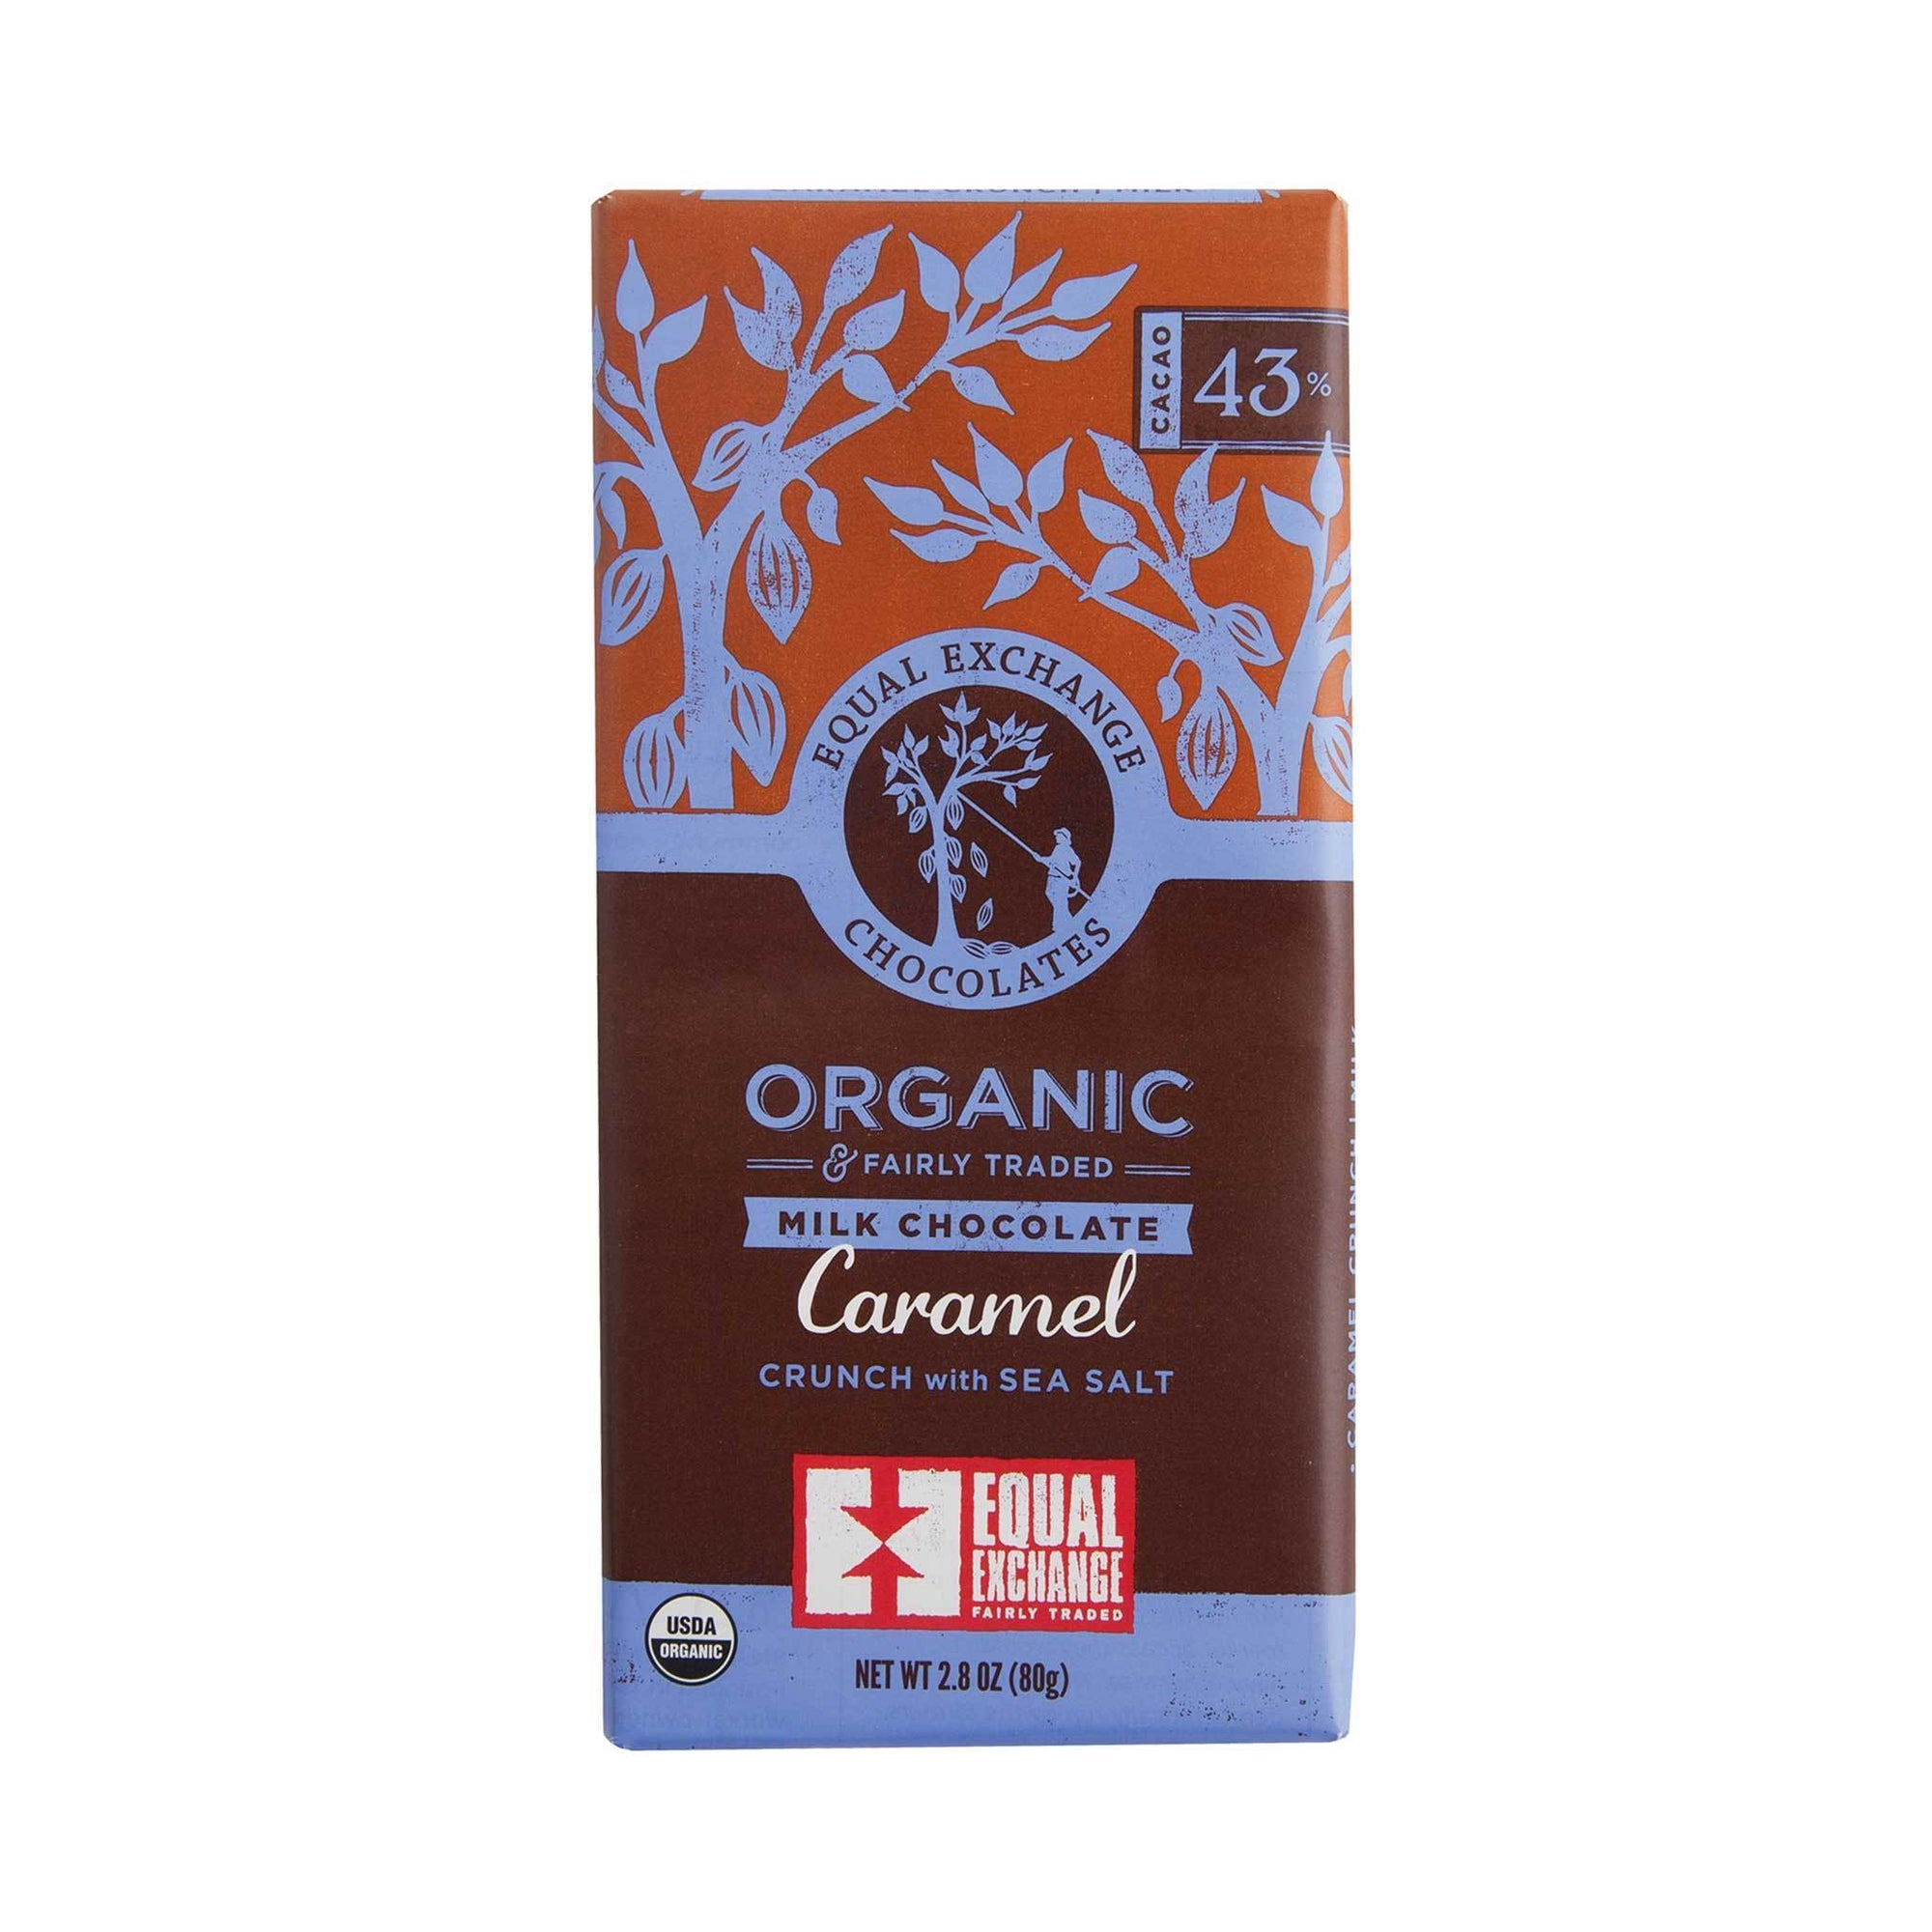 Caramel Crunch Organic Milk Chocolate - Equal Exchange - 2.8 oz